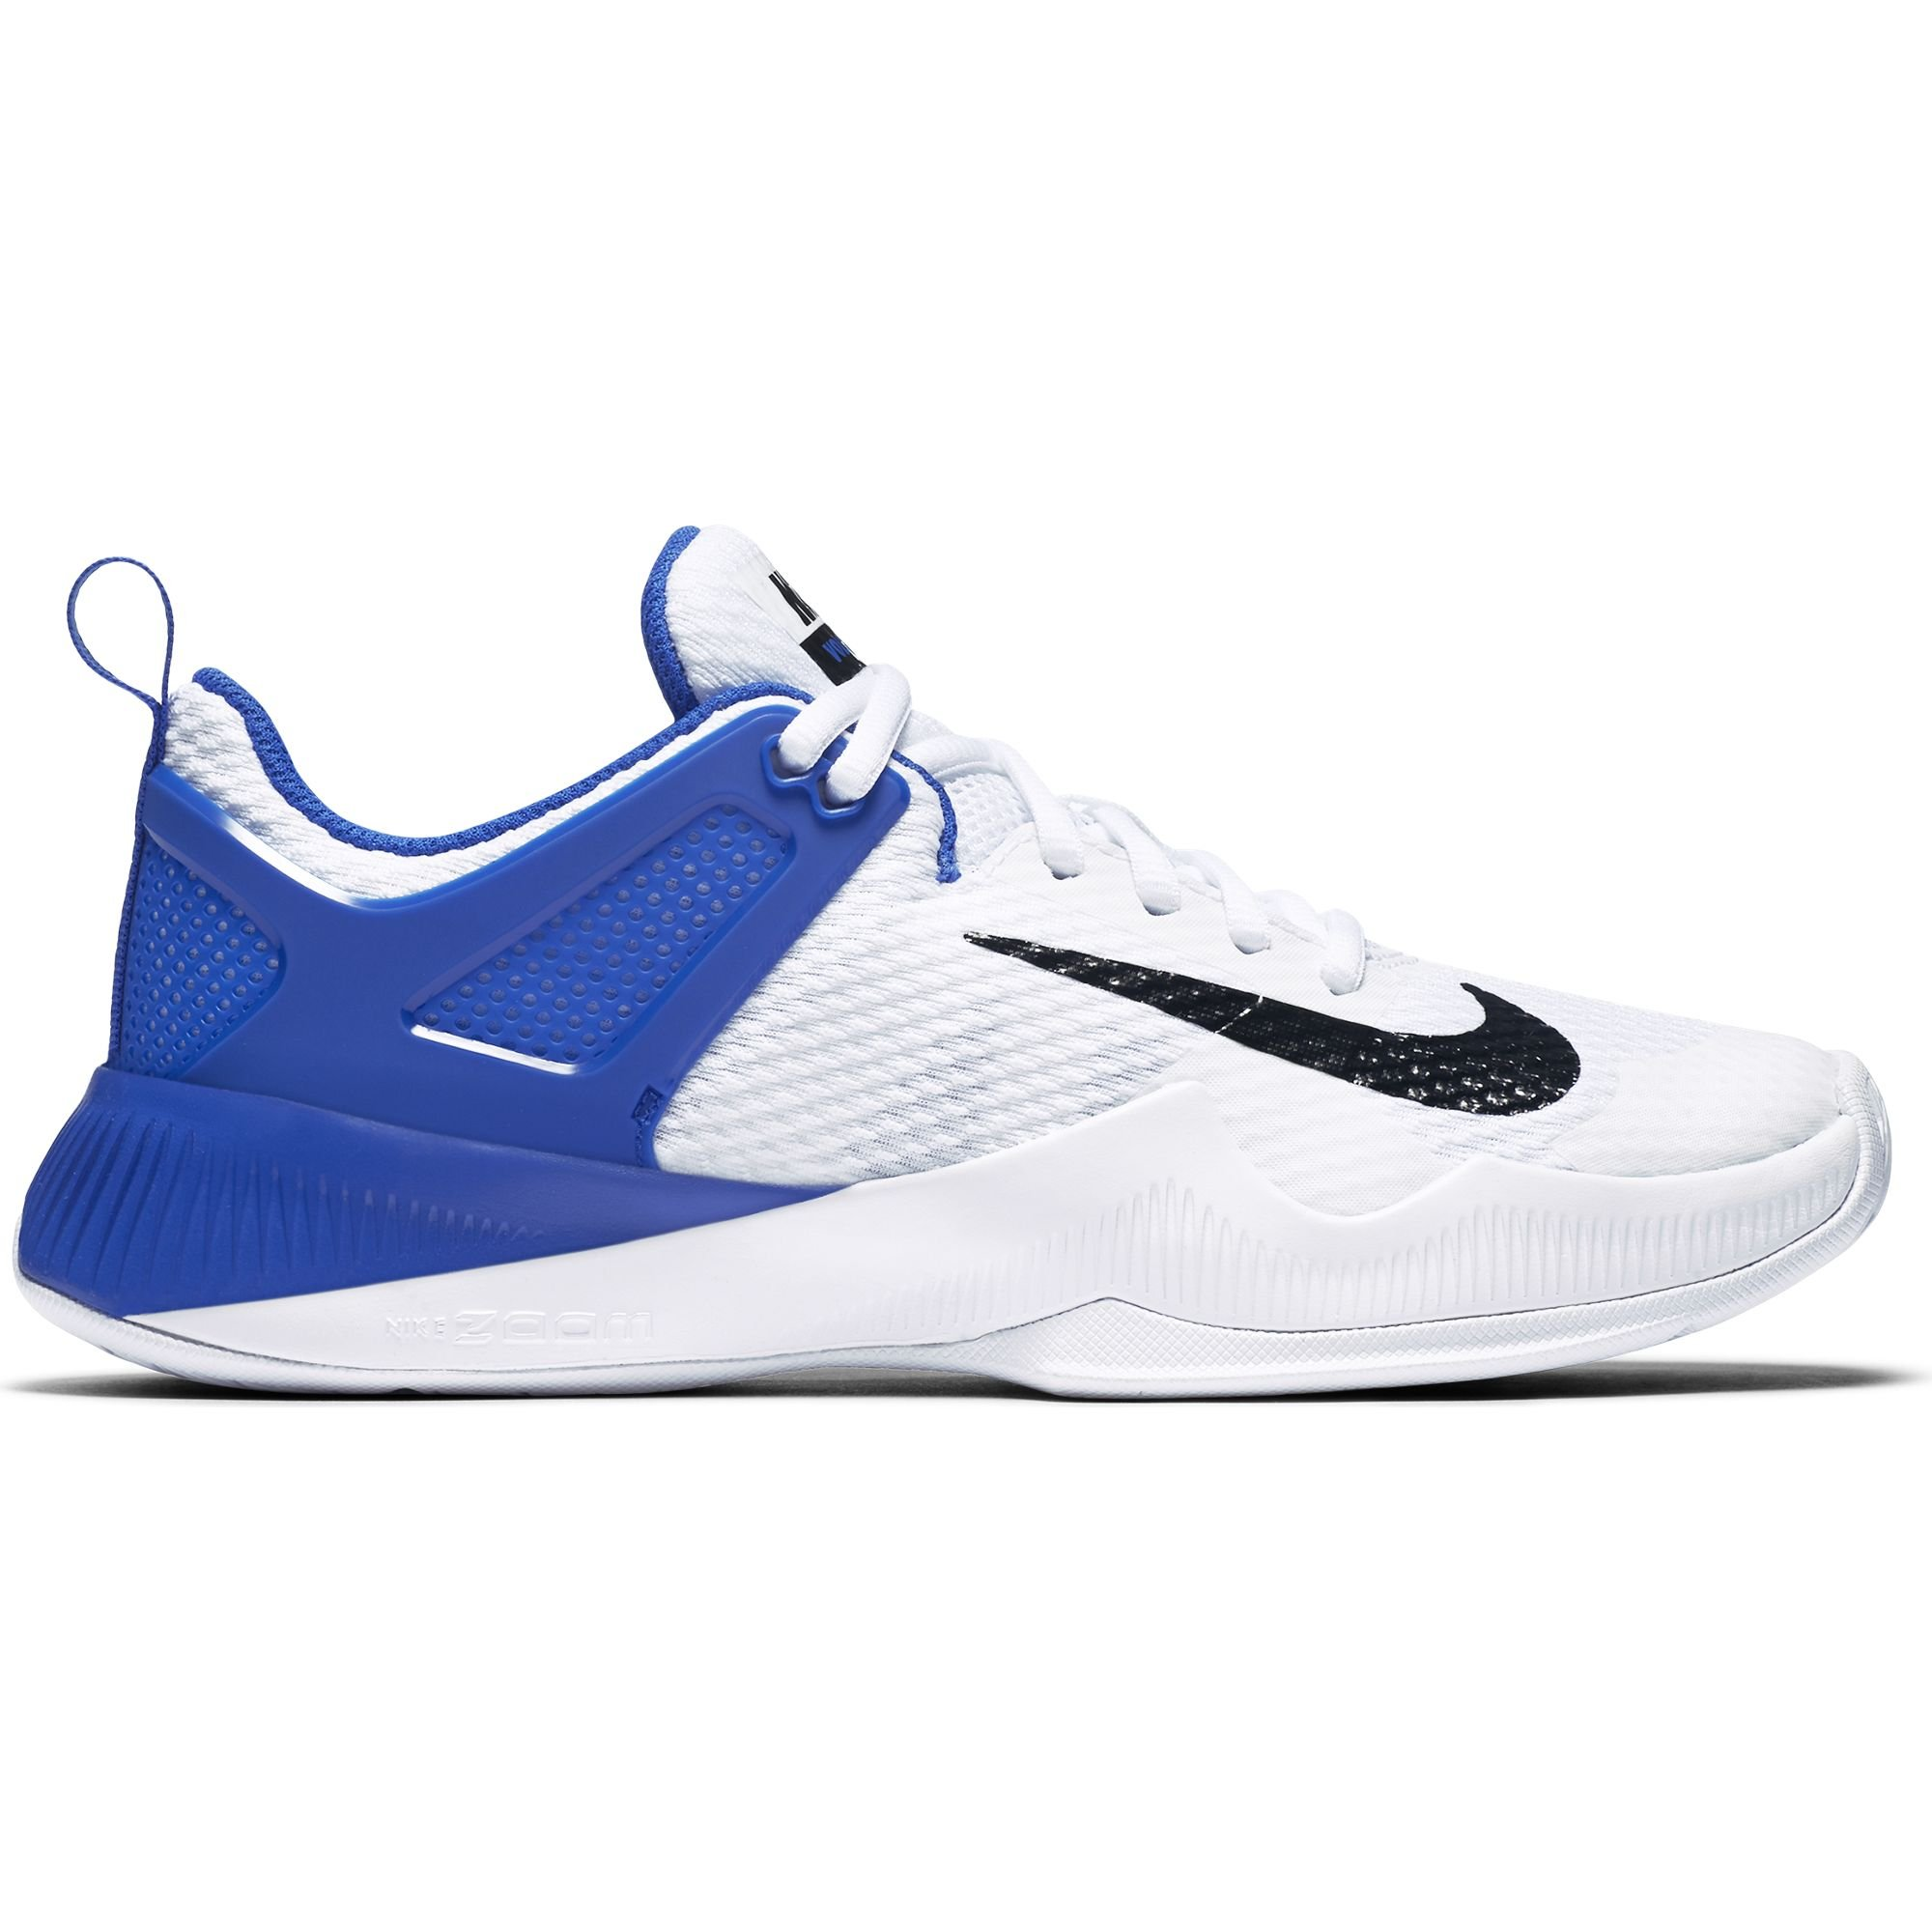 Women's Nike Air Zoom Hyperace Volleyball Shoes White/Black/Game Royal Size 9 M US